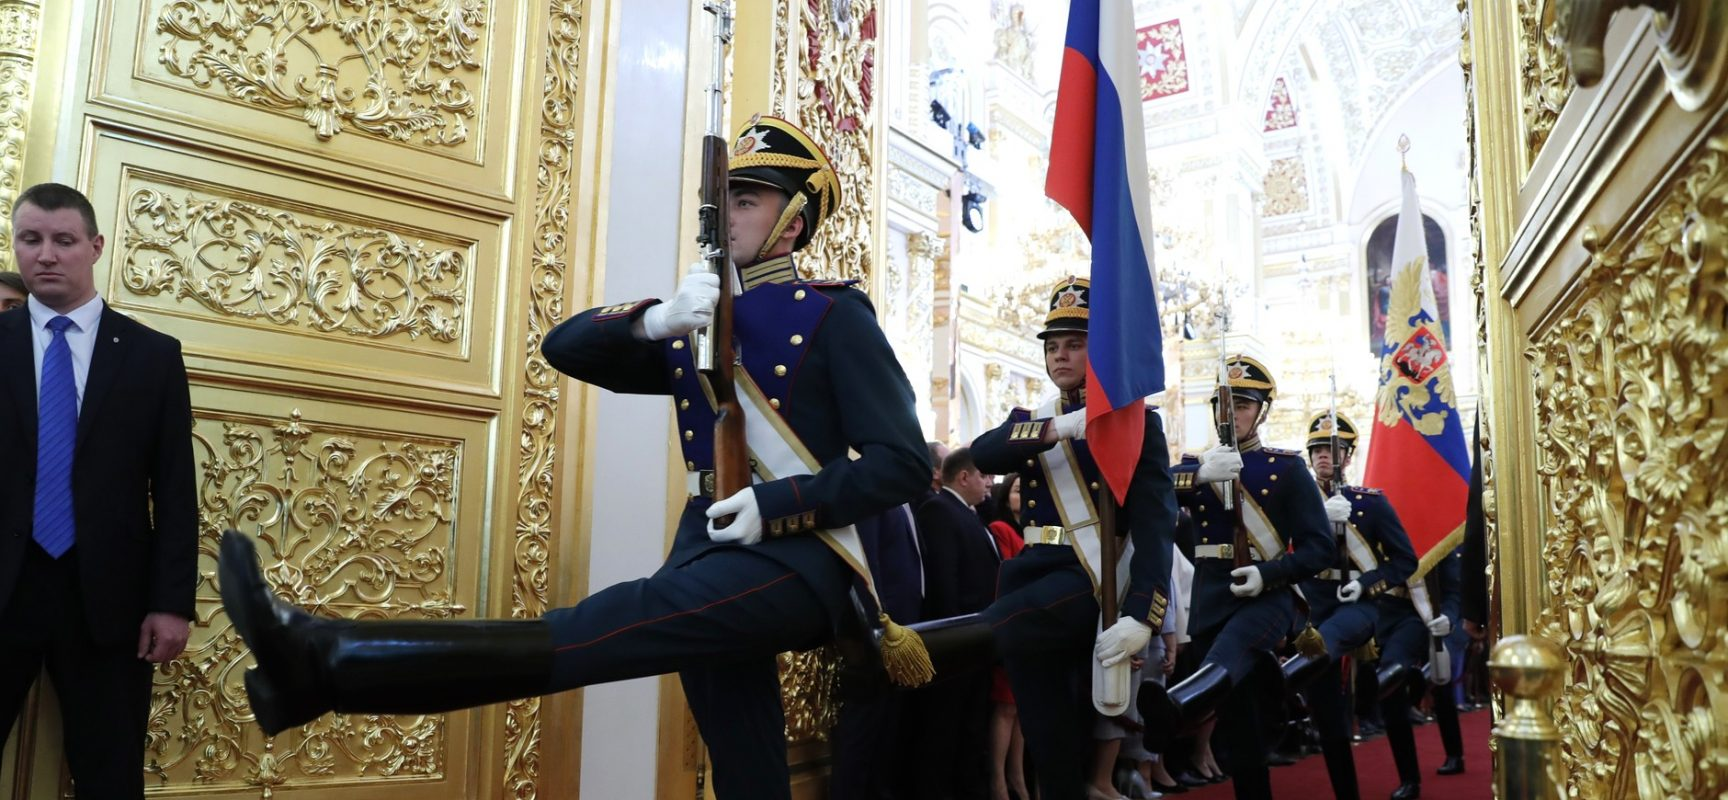 What does the Kremlin want?